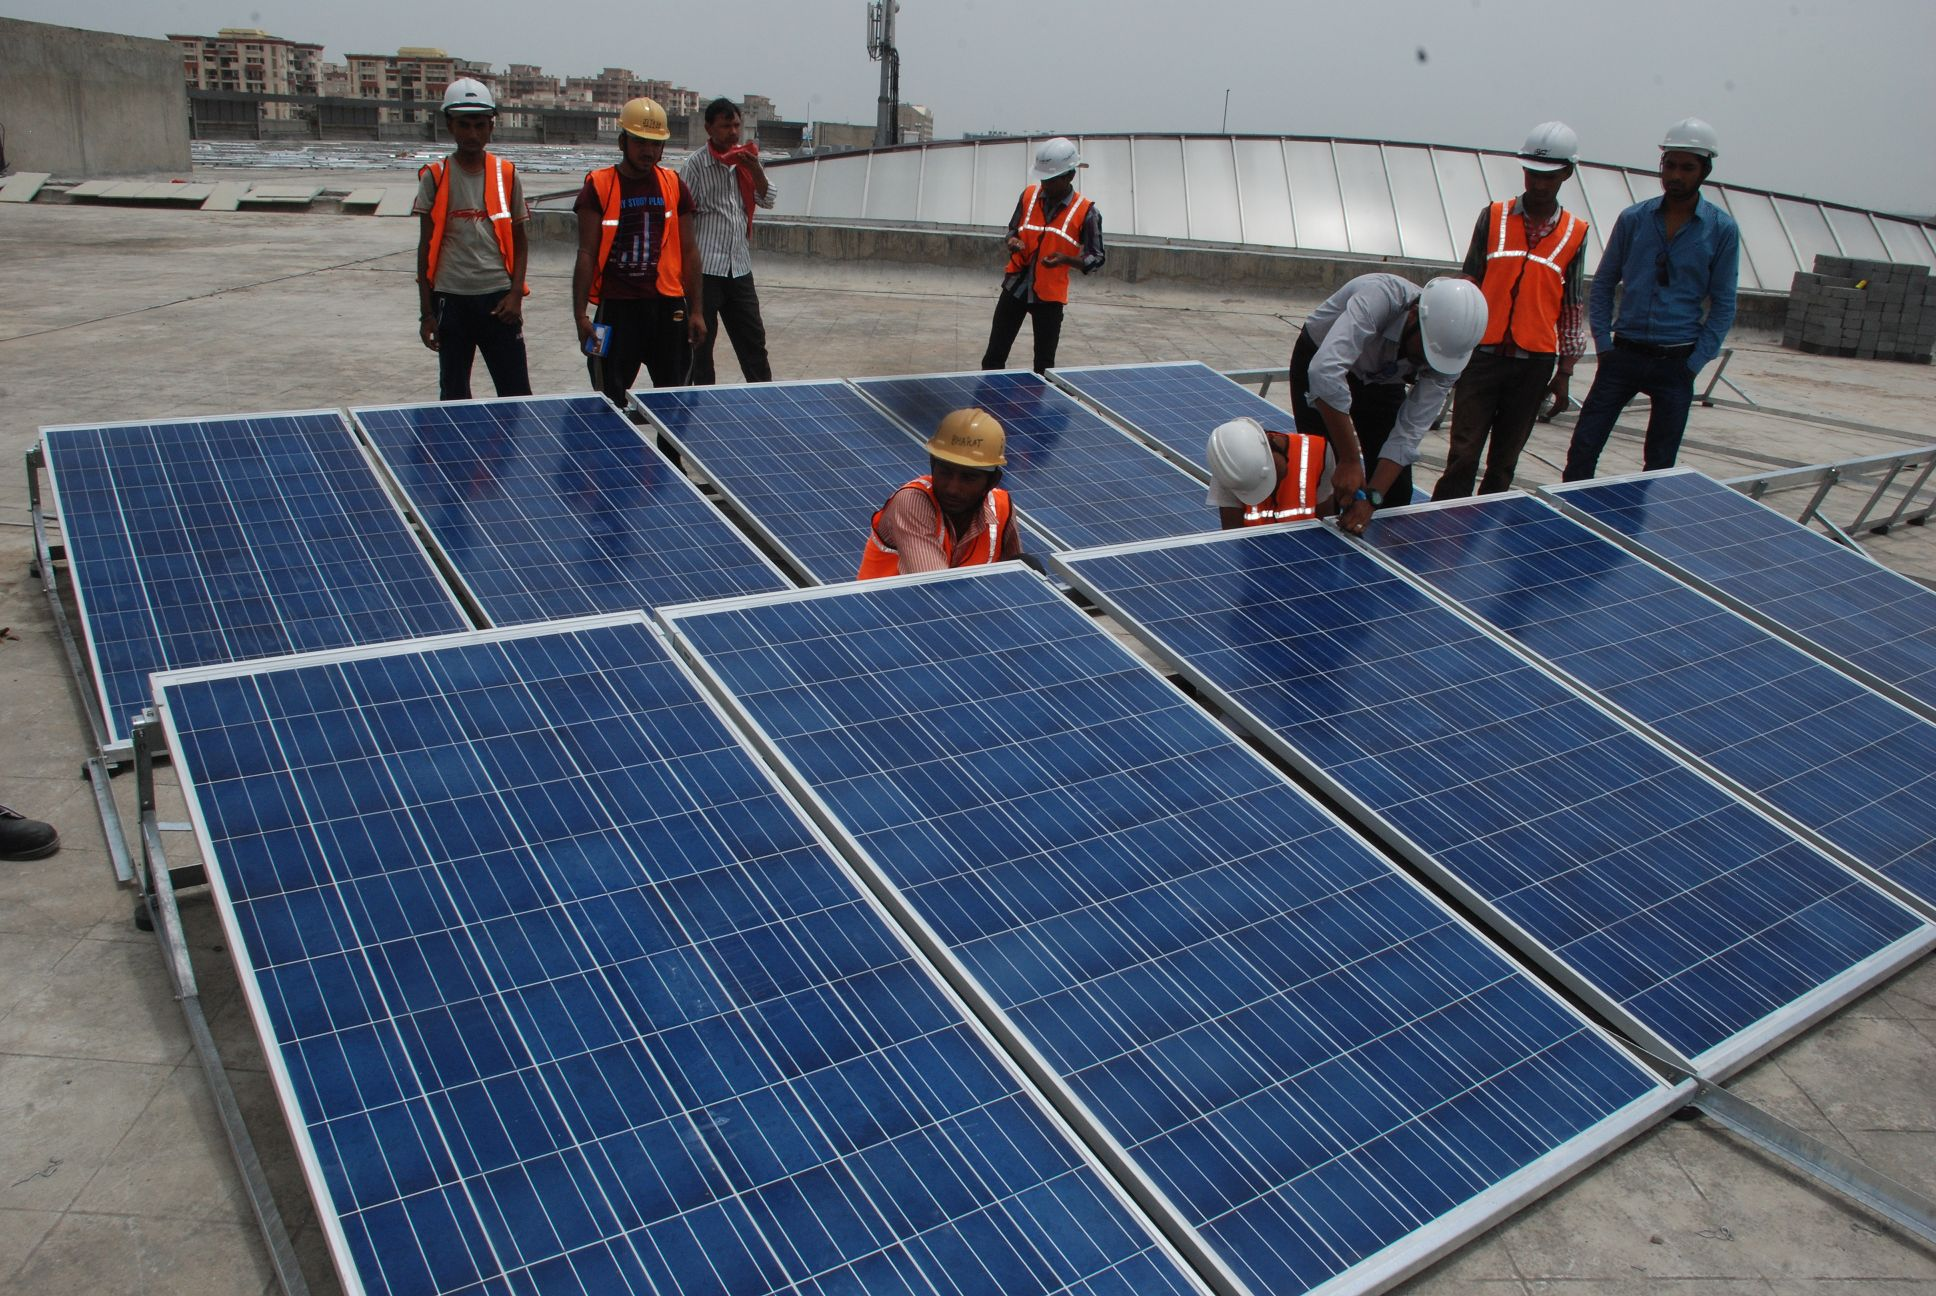 Workers in front of solar panels